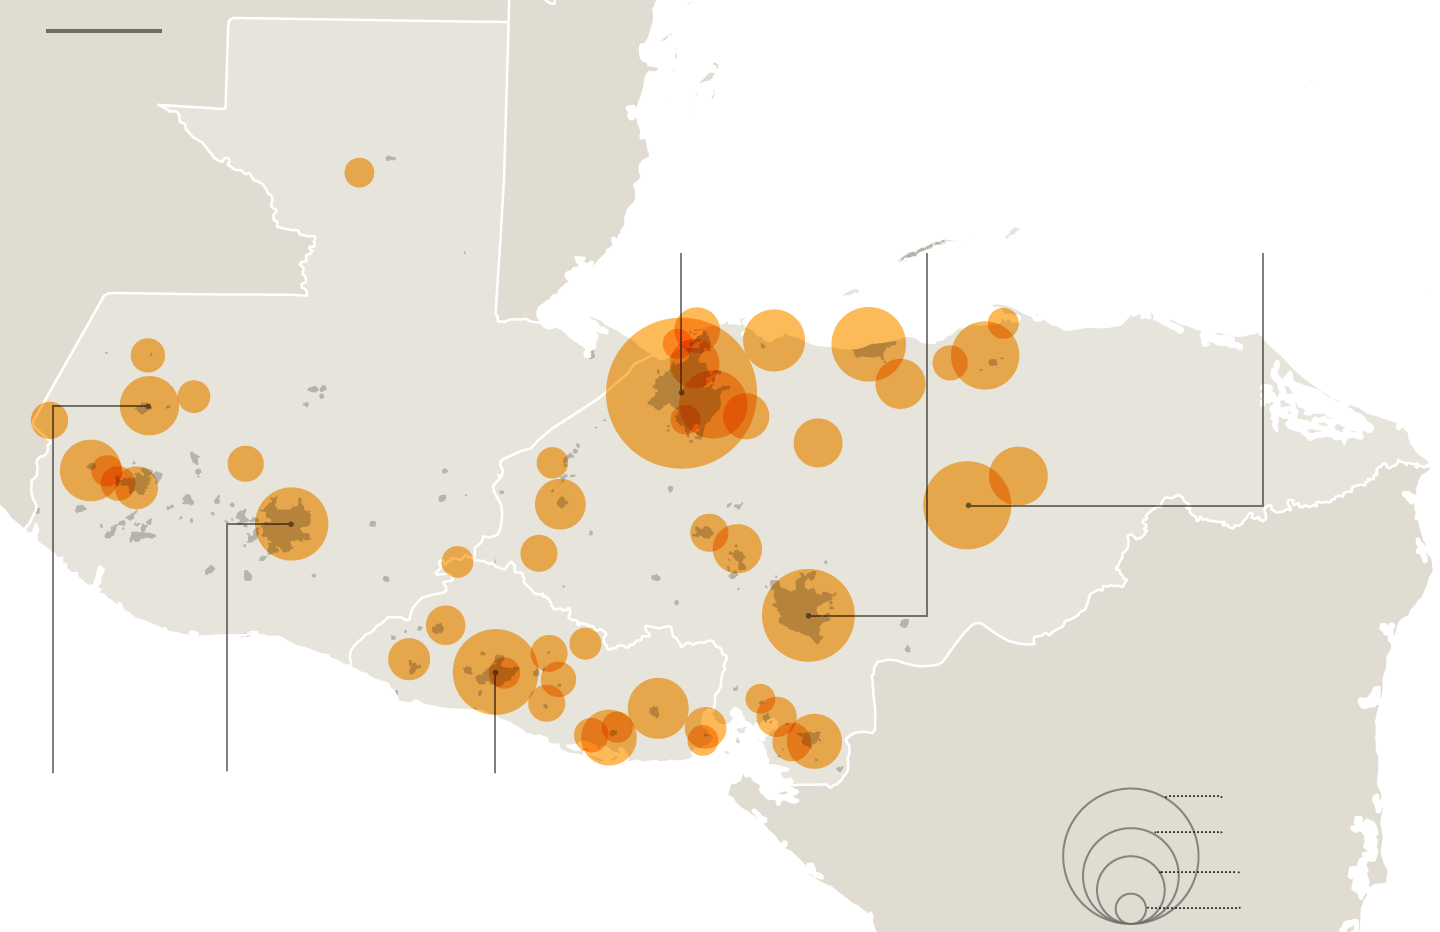 The Crisis With Children Crossing the Border - Facts amd figures - NYTimes.com